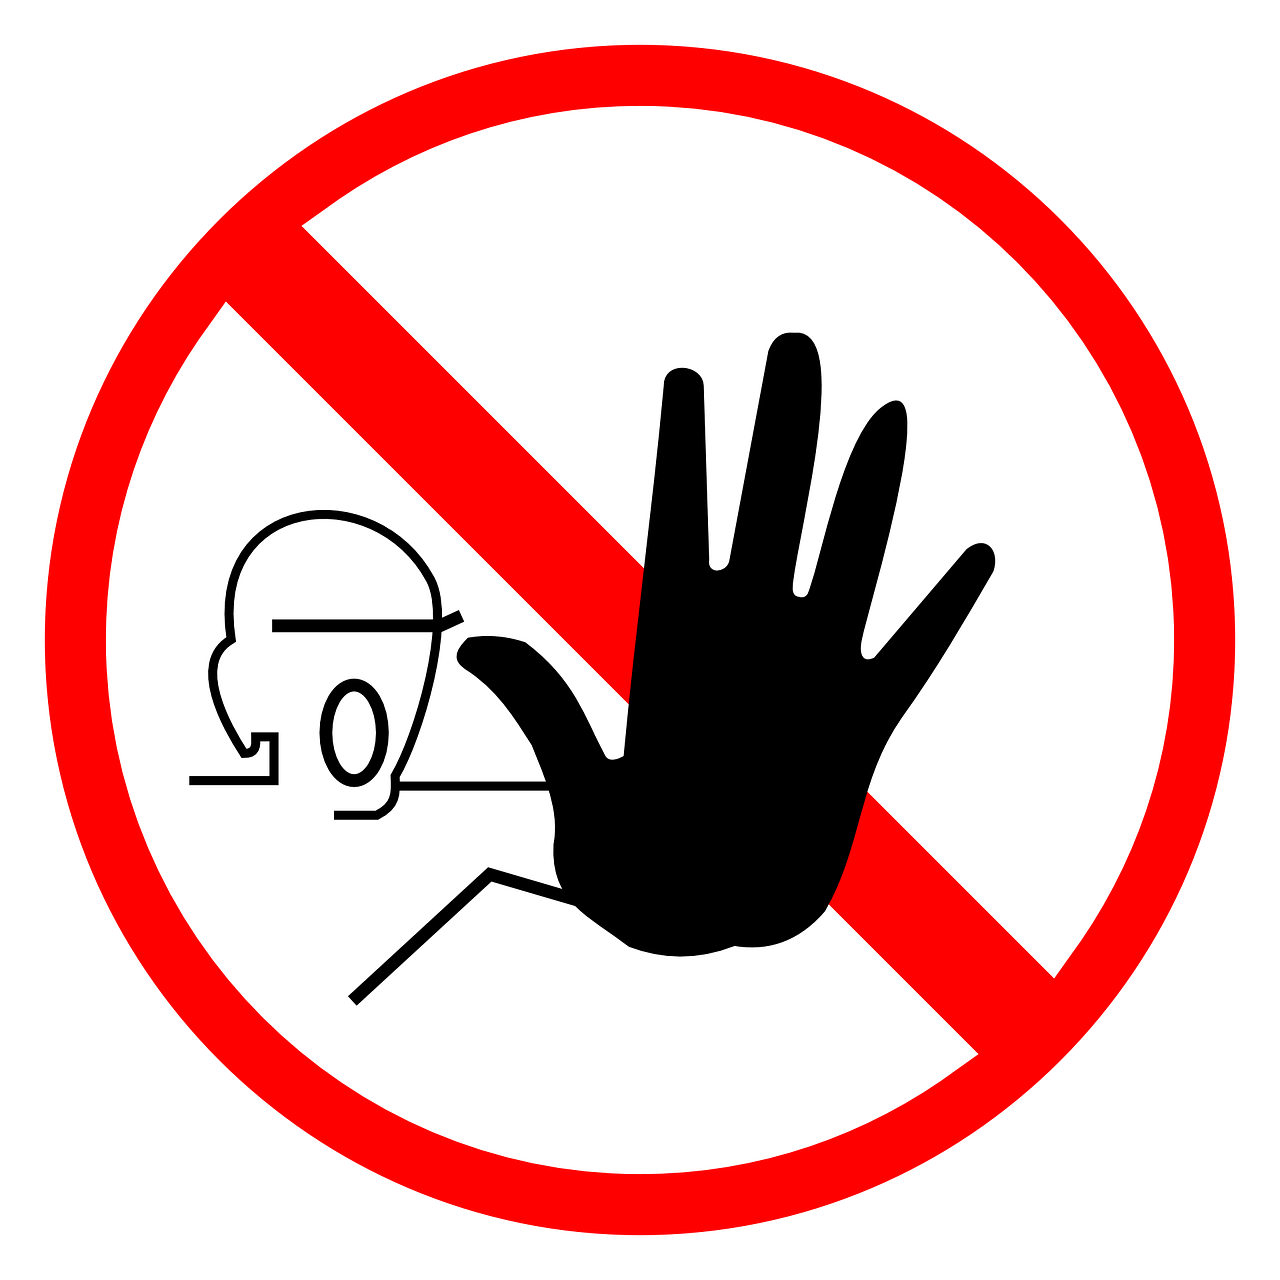 pixabay:Clker-Free-Vector-Images _sign